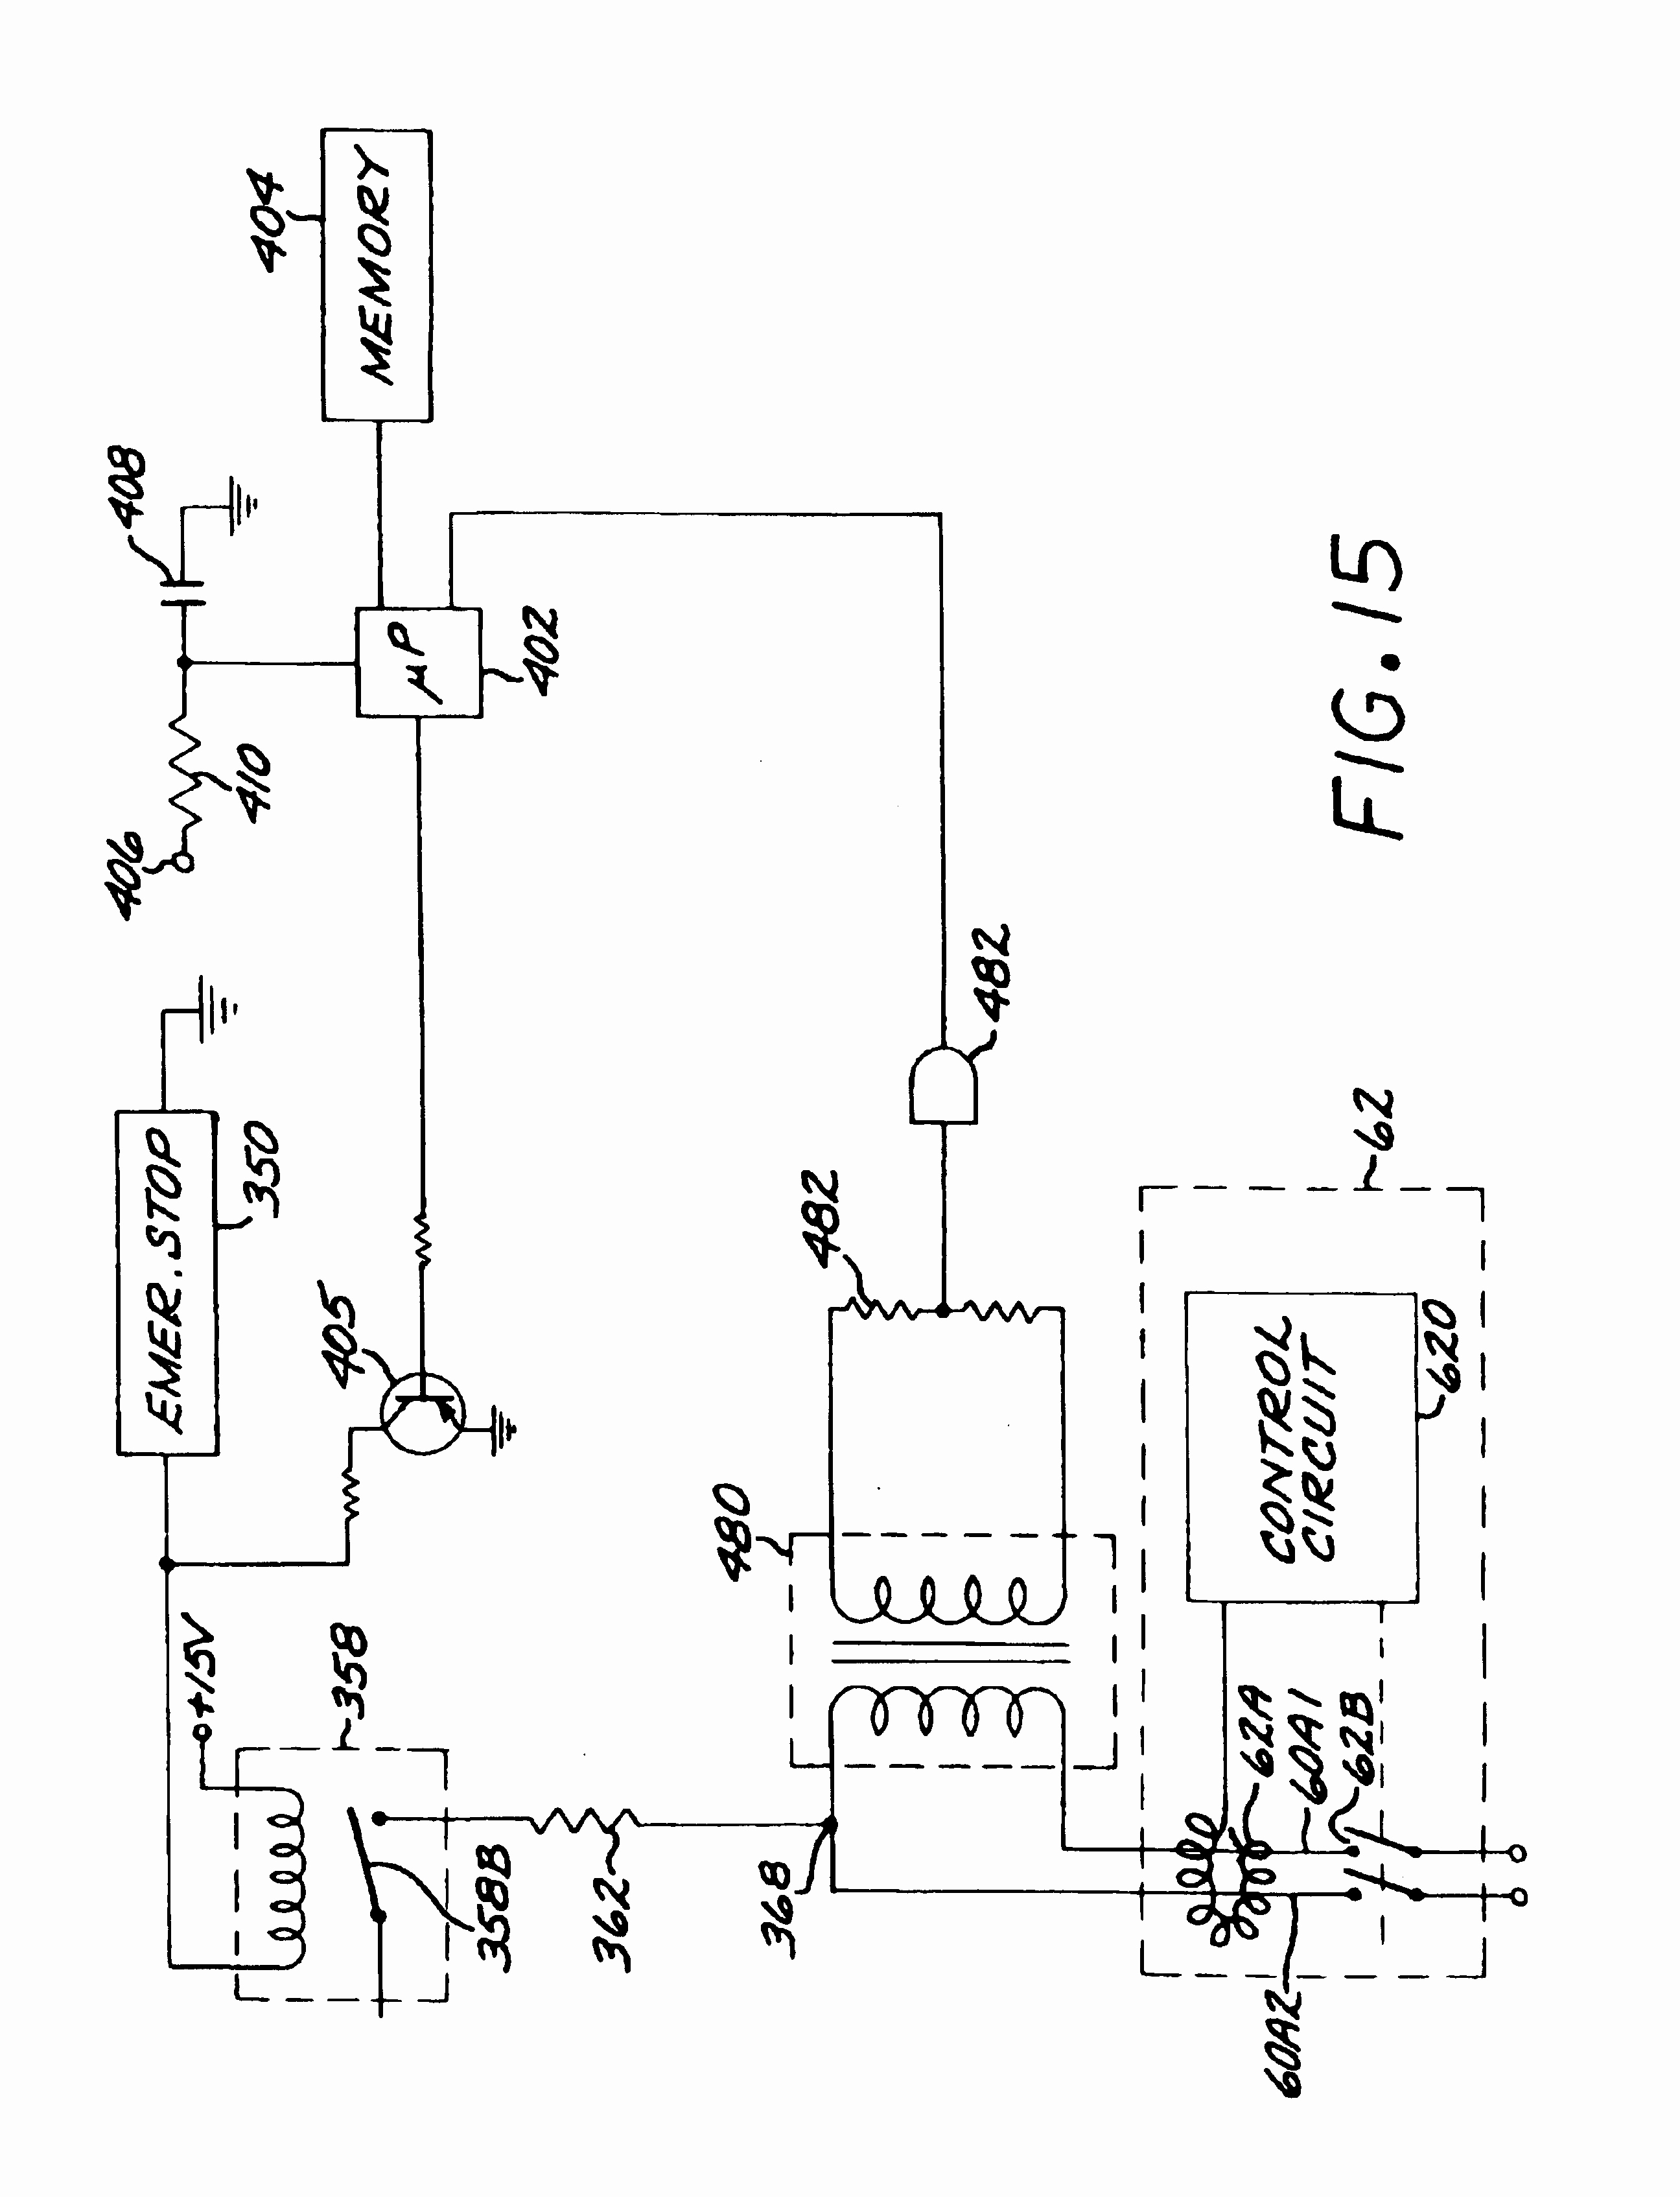 automatic pool cover wiring diagram Collection-Swimming Pool Timer Wiring Diagram for Spa Pump Wiring Diagram New Sta Rite Pool Pump Wiring 9-m